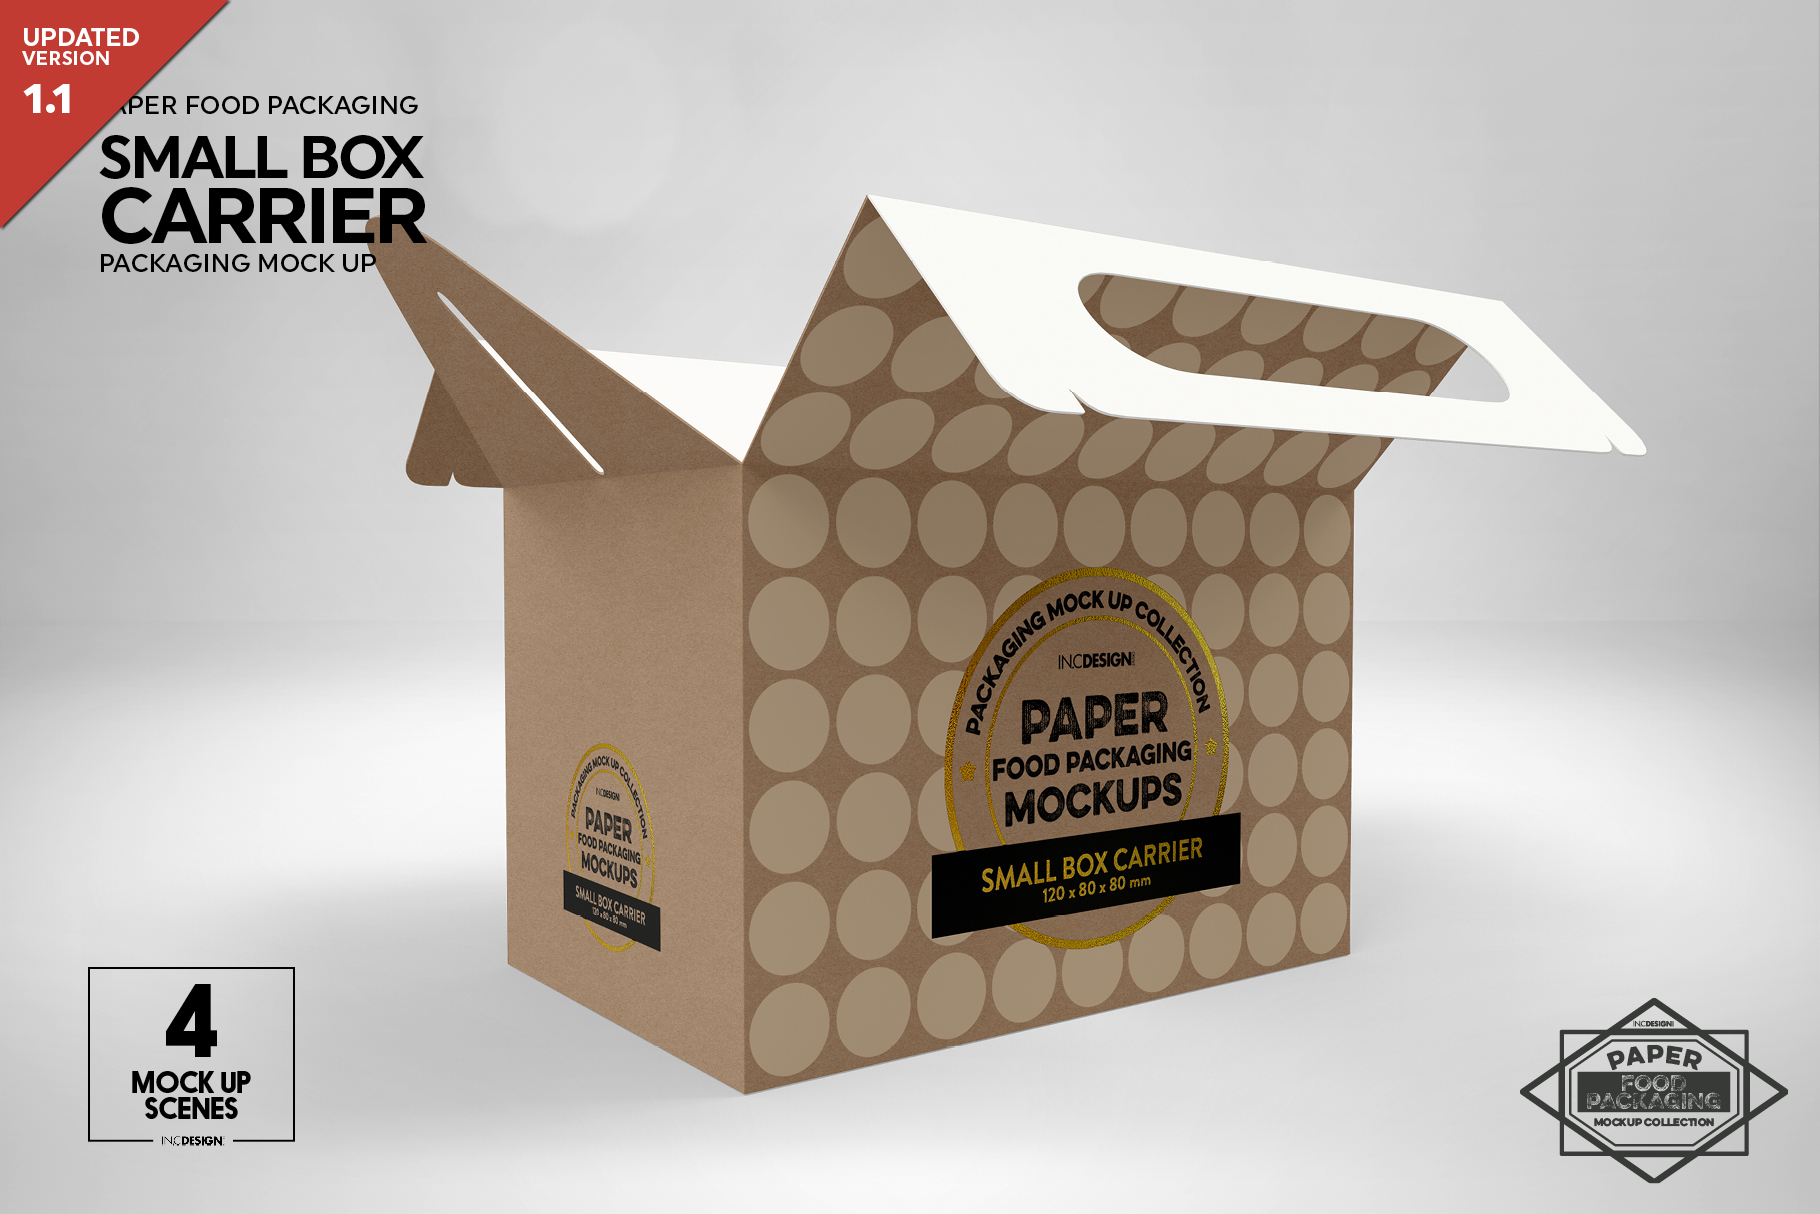 Small Cake Box Carrier Packaging Mockup example image 1